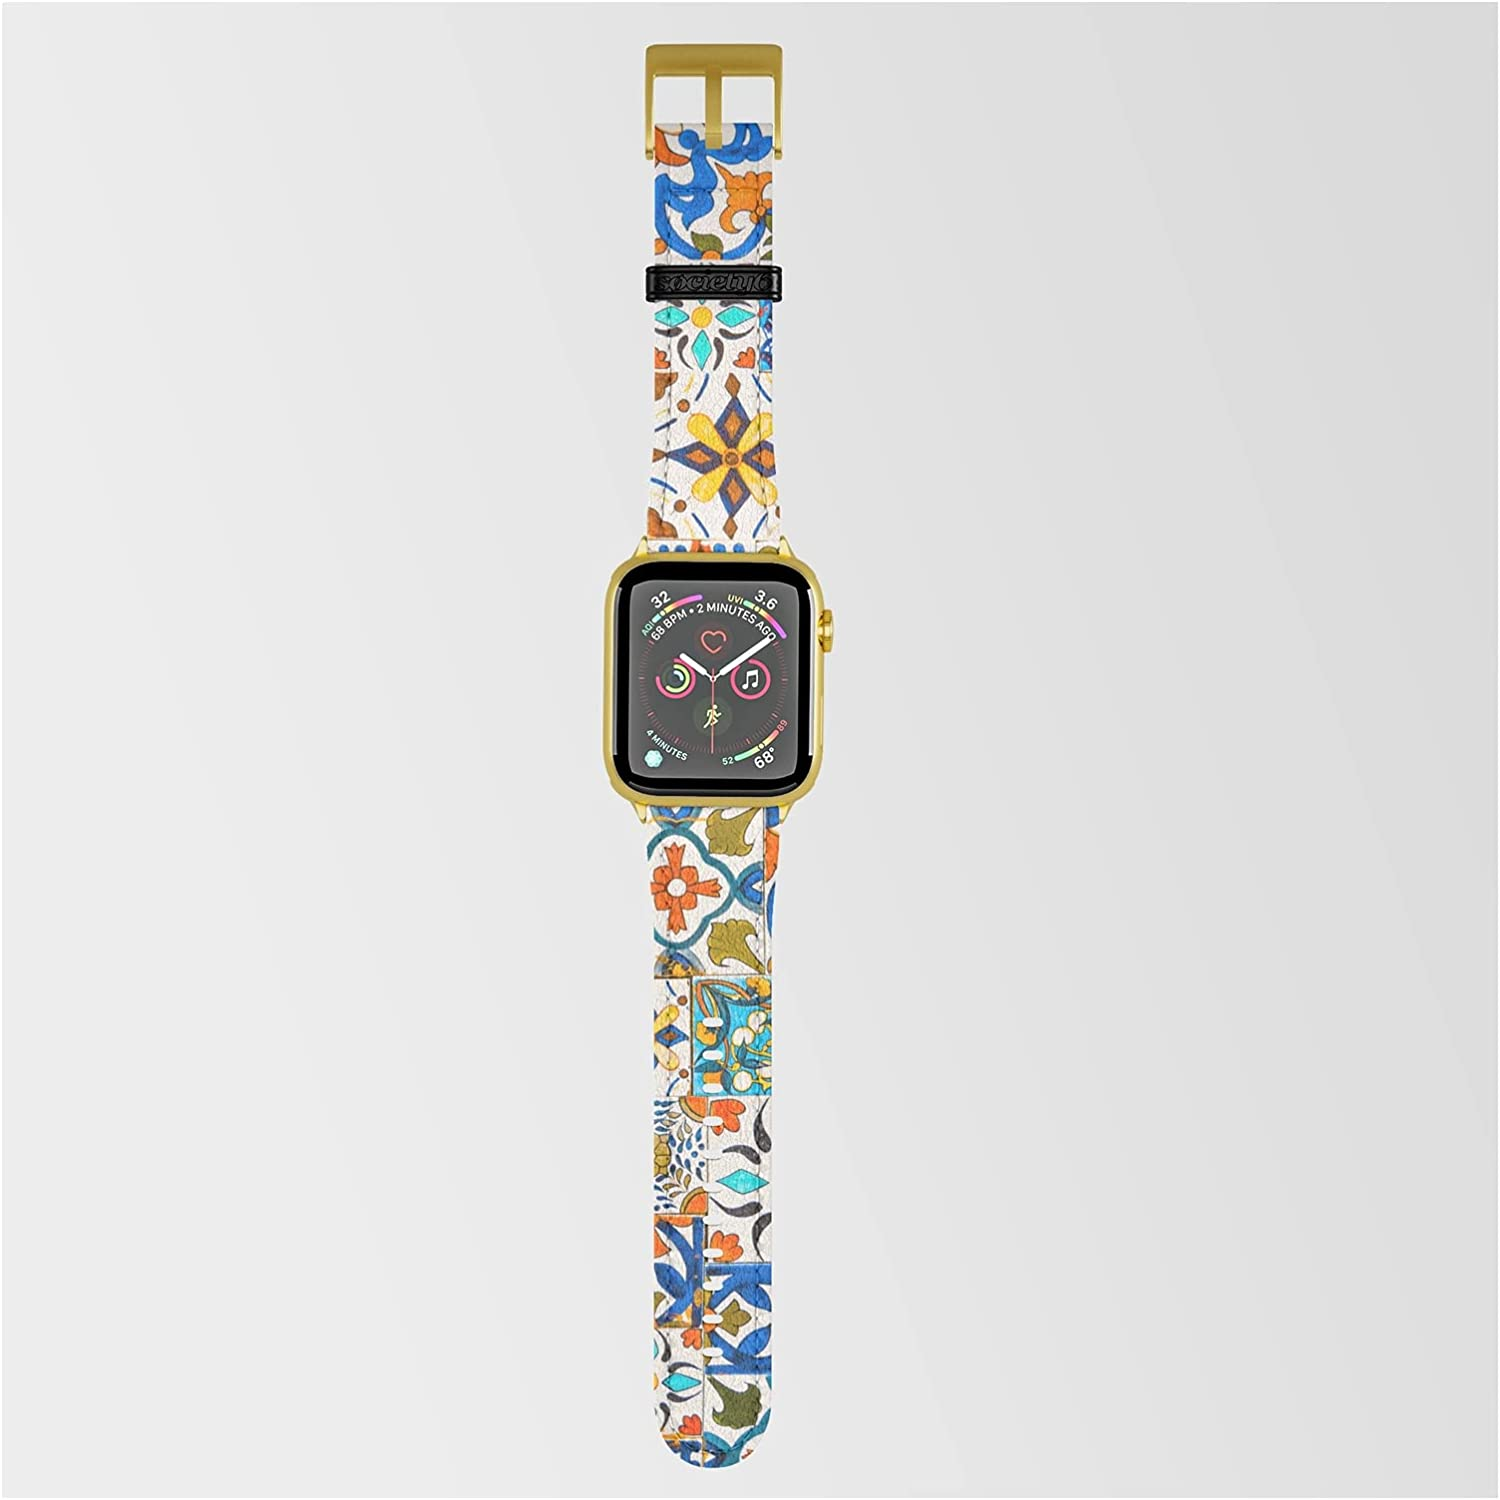 Moroccan Mosaic Quality inspection Ii by Mmartabc wit Compatible on Super Special SALE held Smartwatch Band